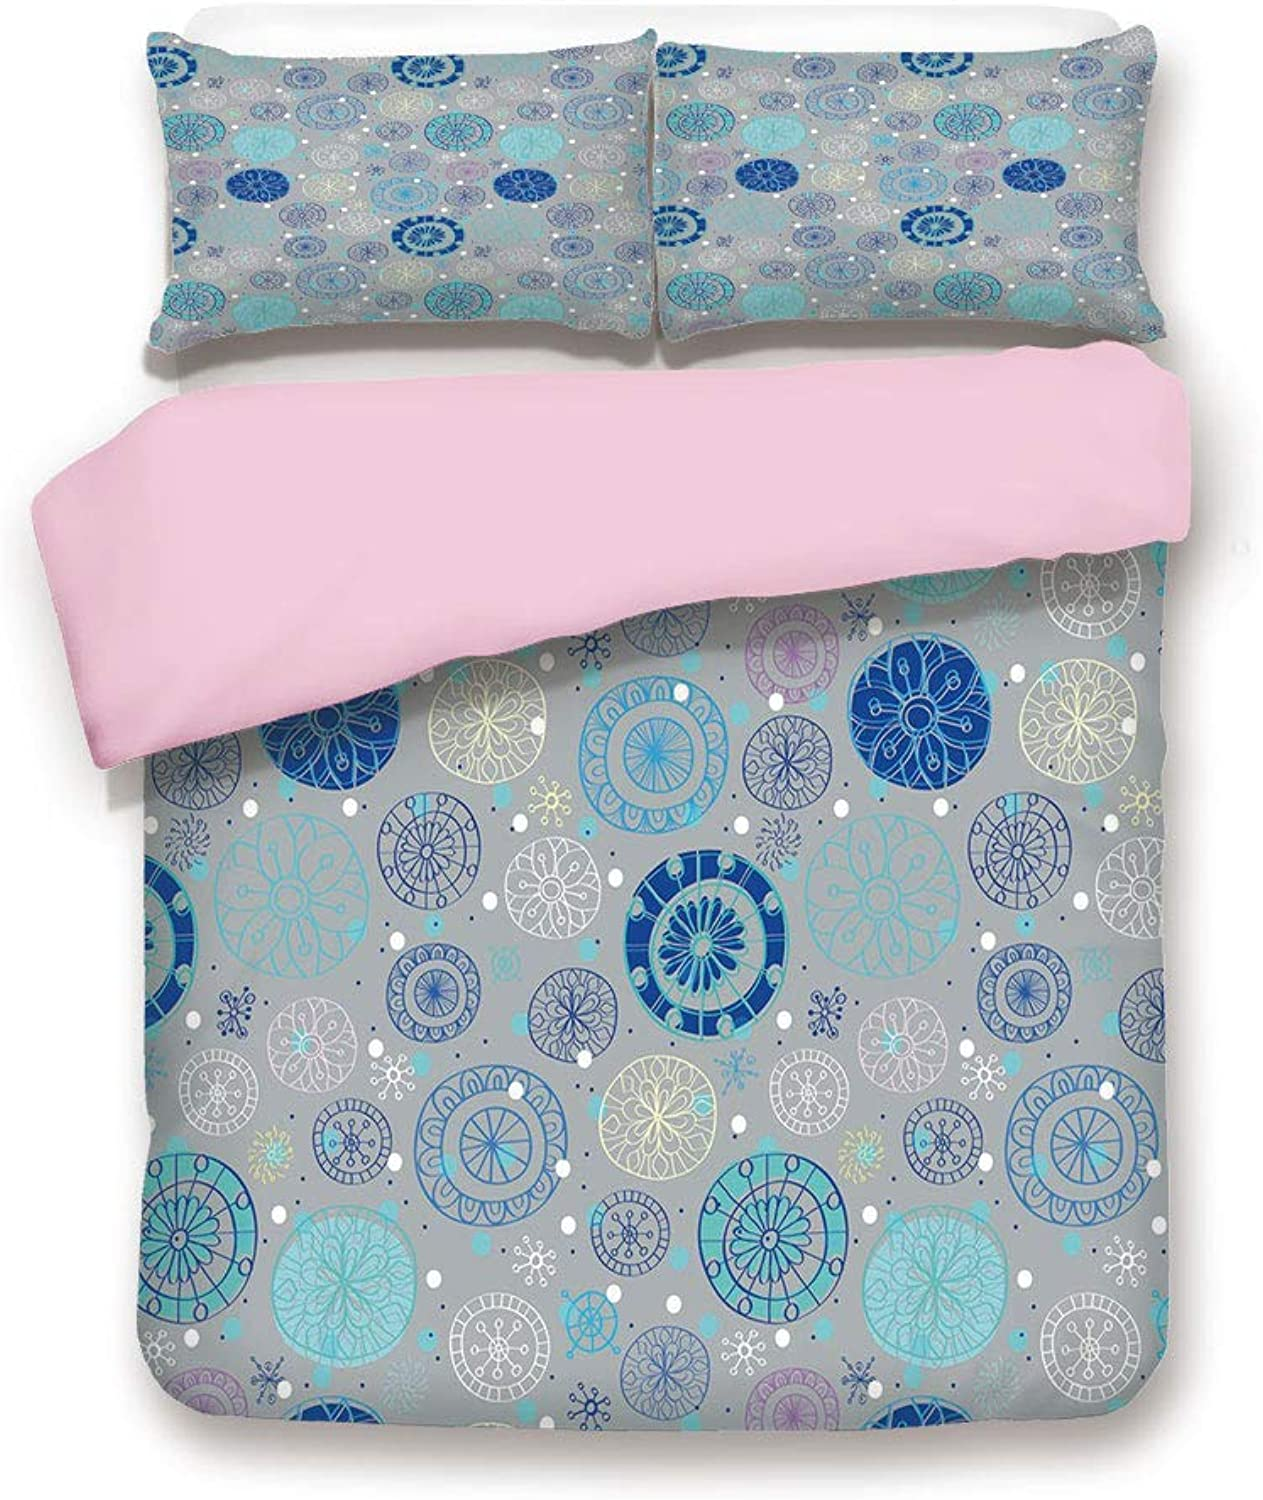 Pink Duvet Cover Set,King Size,Abstract Snowflakes with Beige Background Winter Celebration Theme Christmas Decorative,Decorative 3 Piece Bedding Set with 2 Pillow Sham,Best Gift For Girls Women,Beige